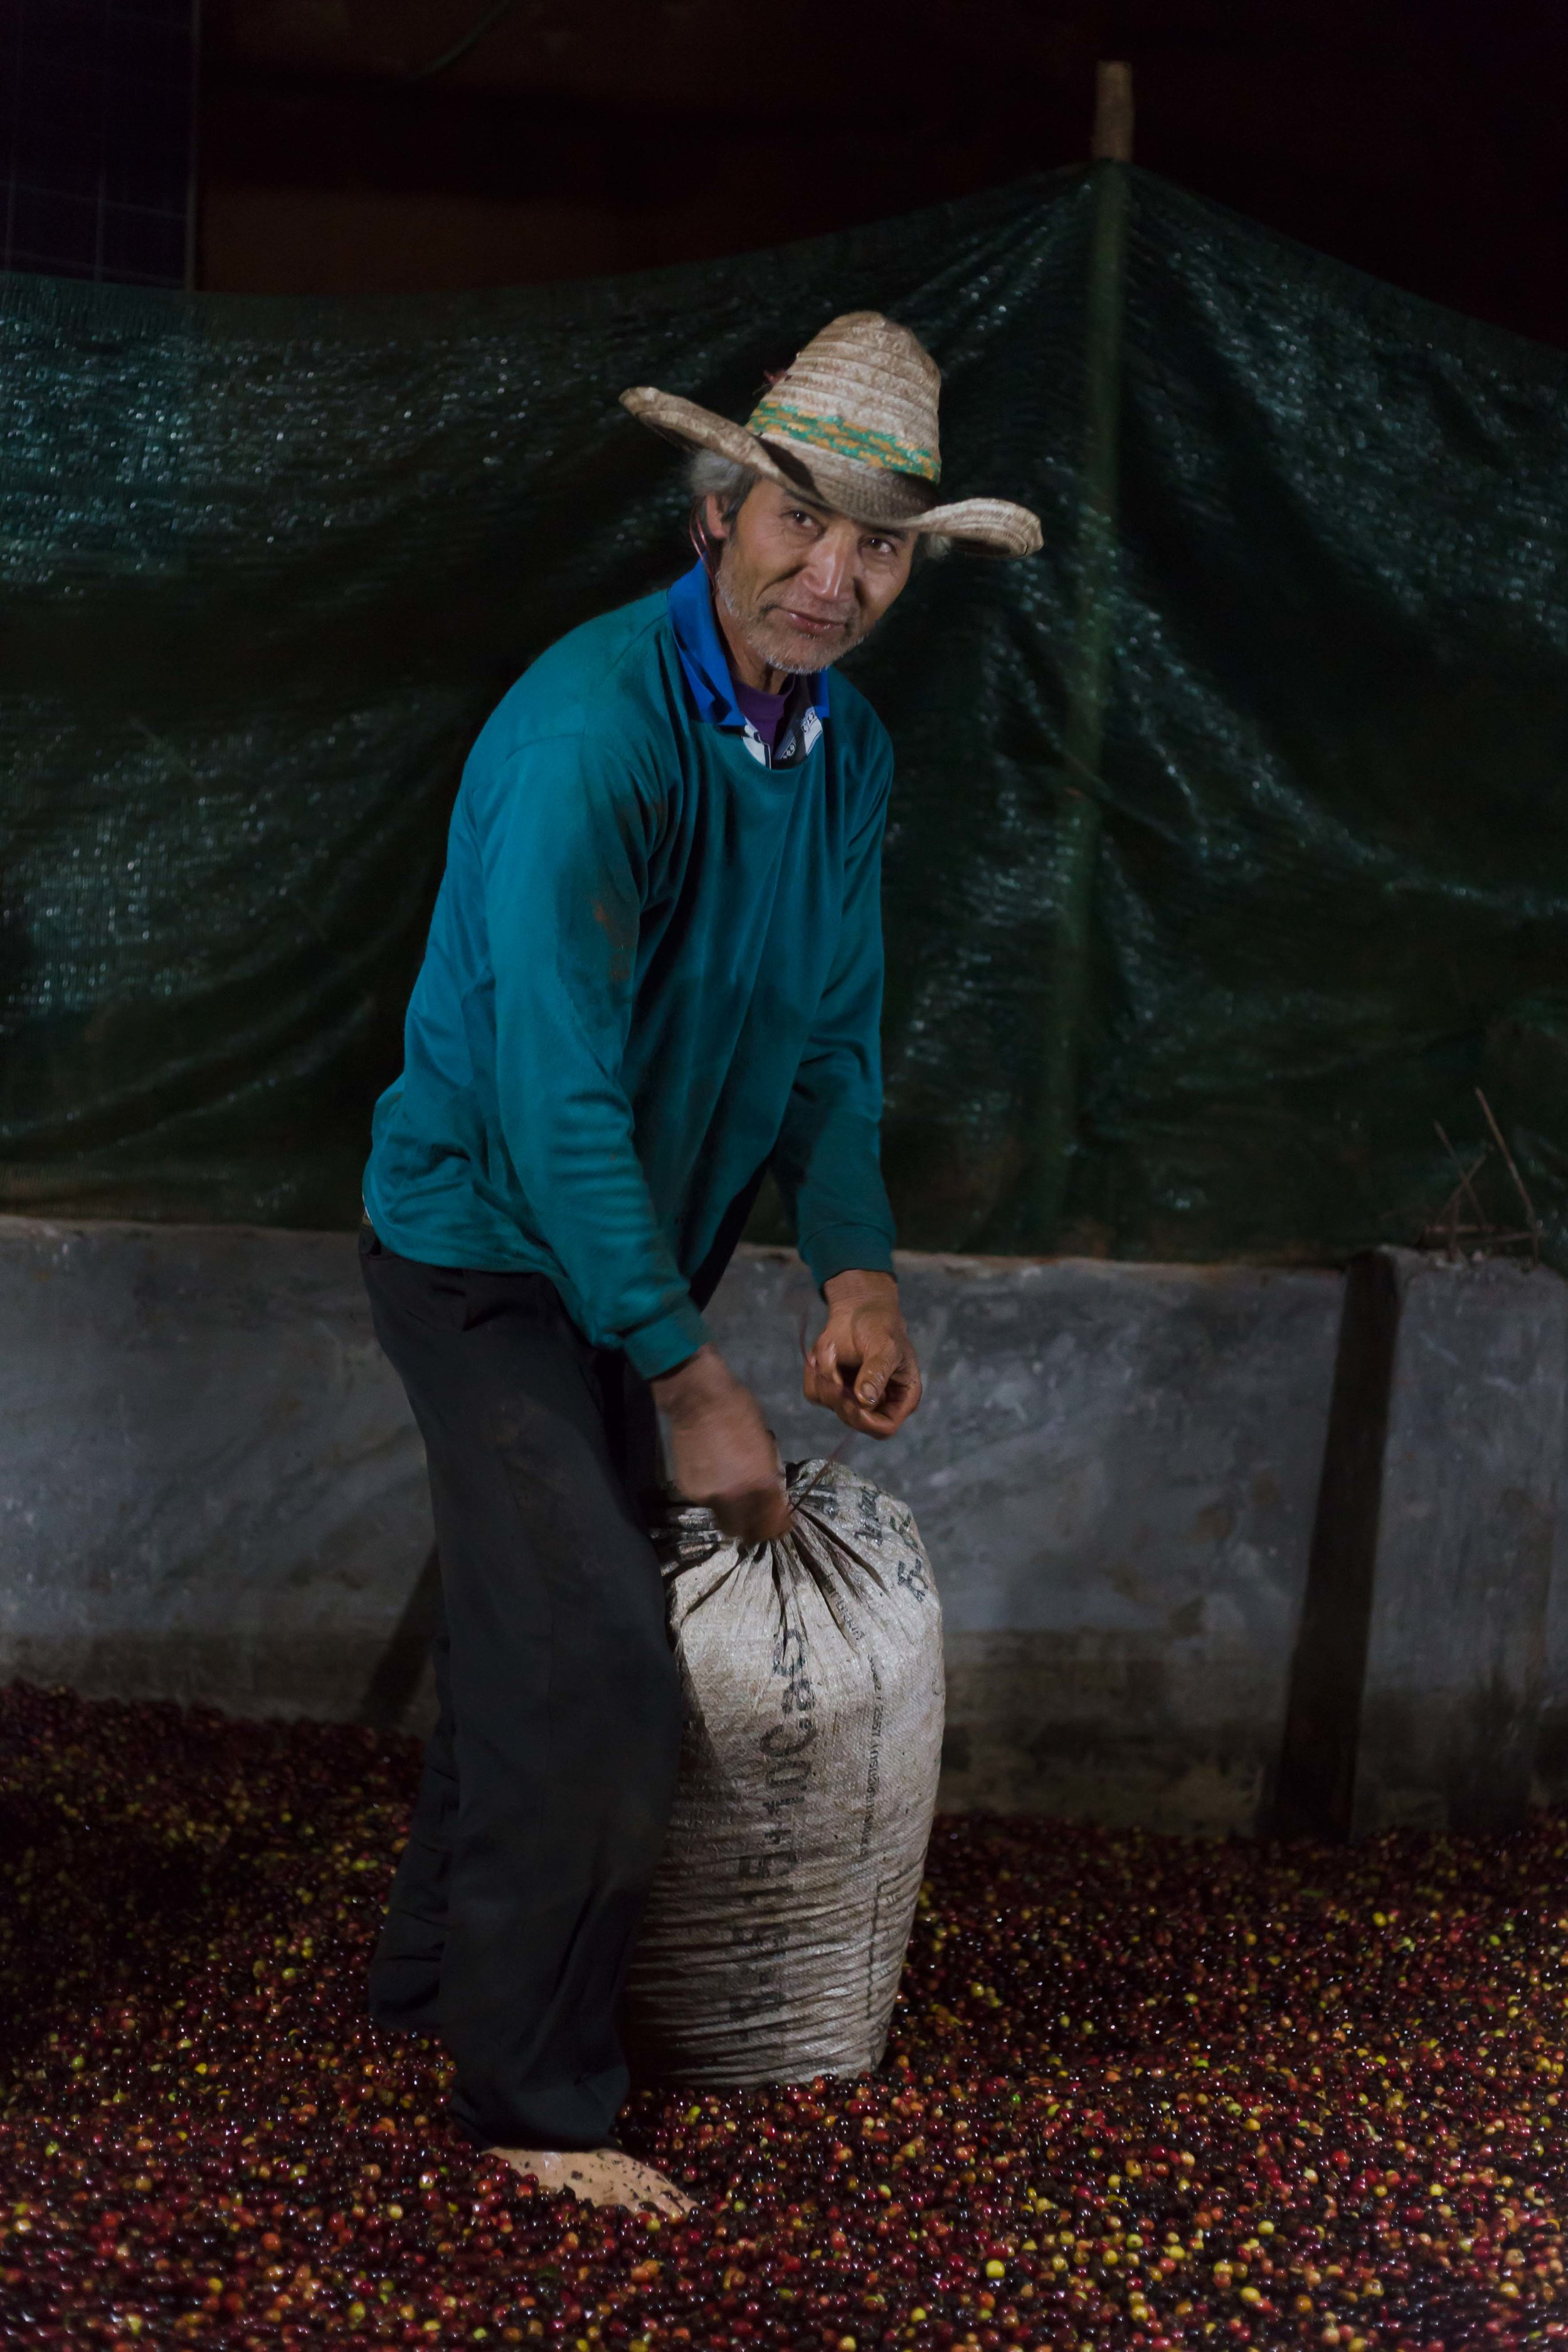 Coffee cherry processing starts in the evening straight after being harvested